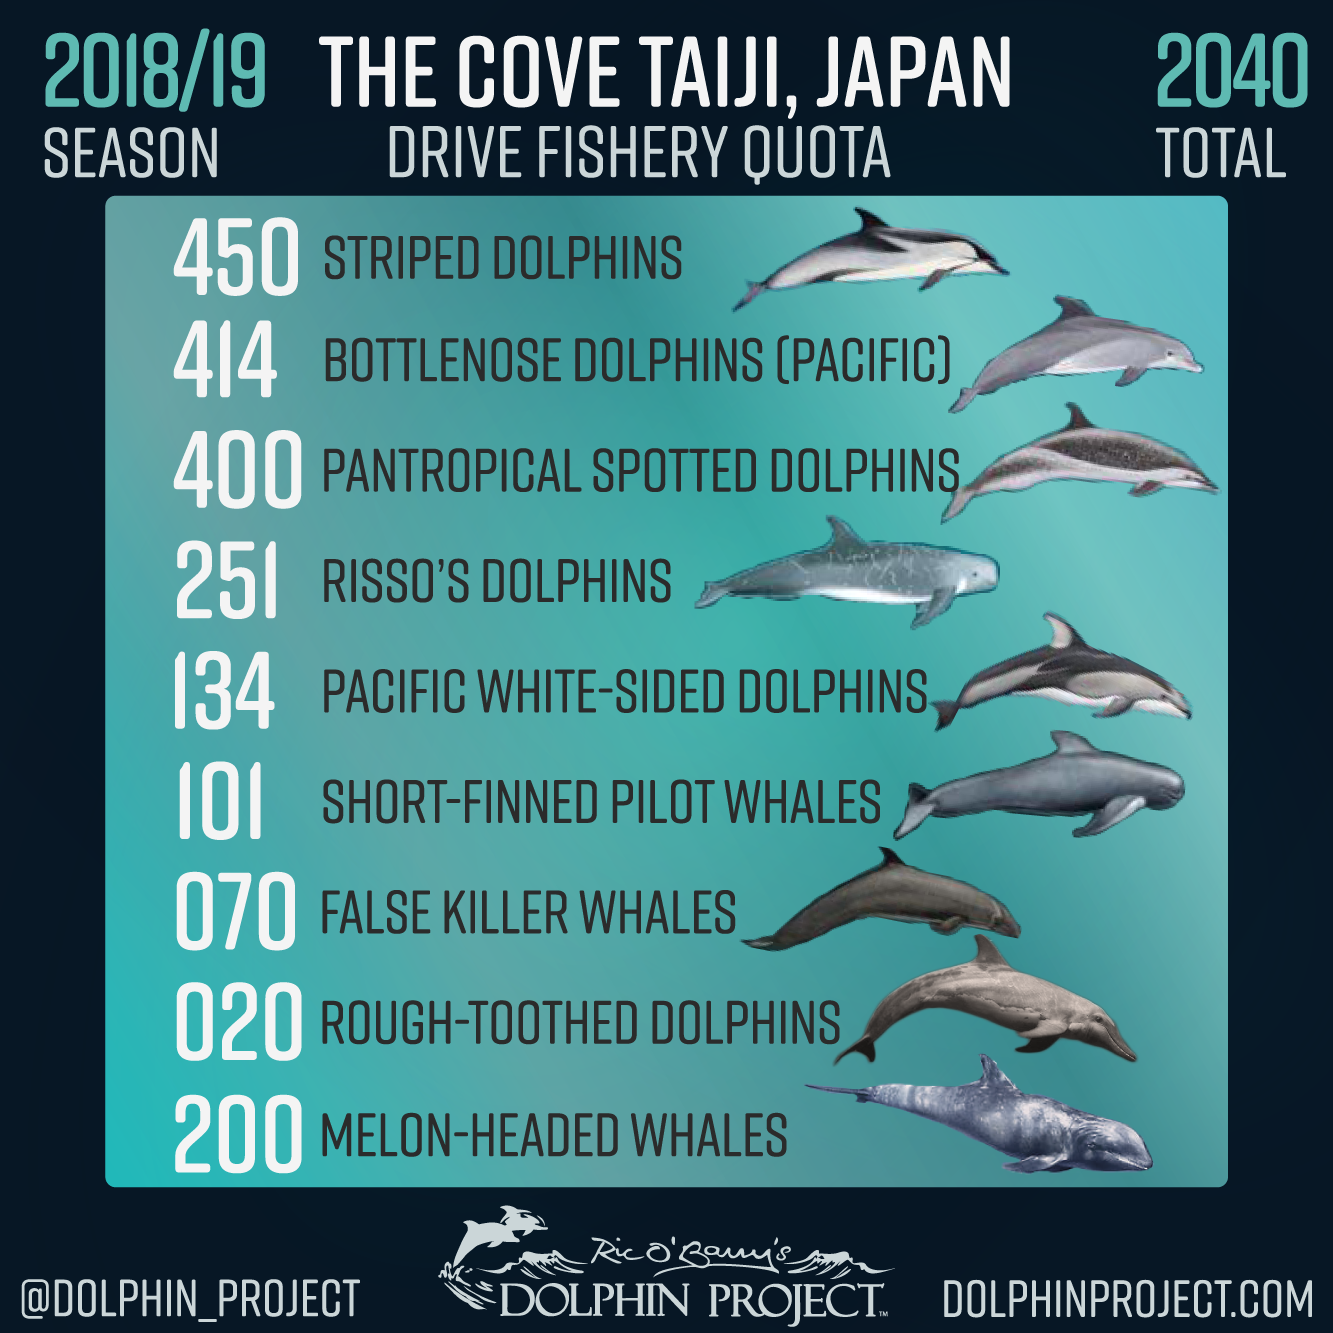 2018 19 Taiji Drive Hunt Season Quota Cove Japan